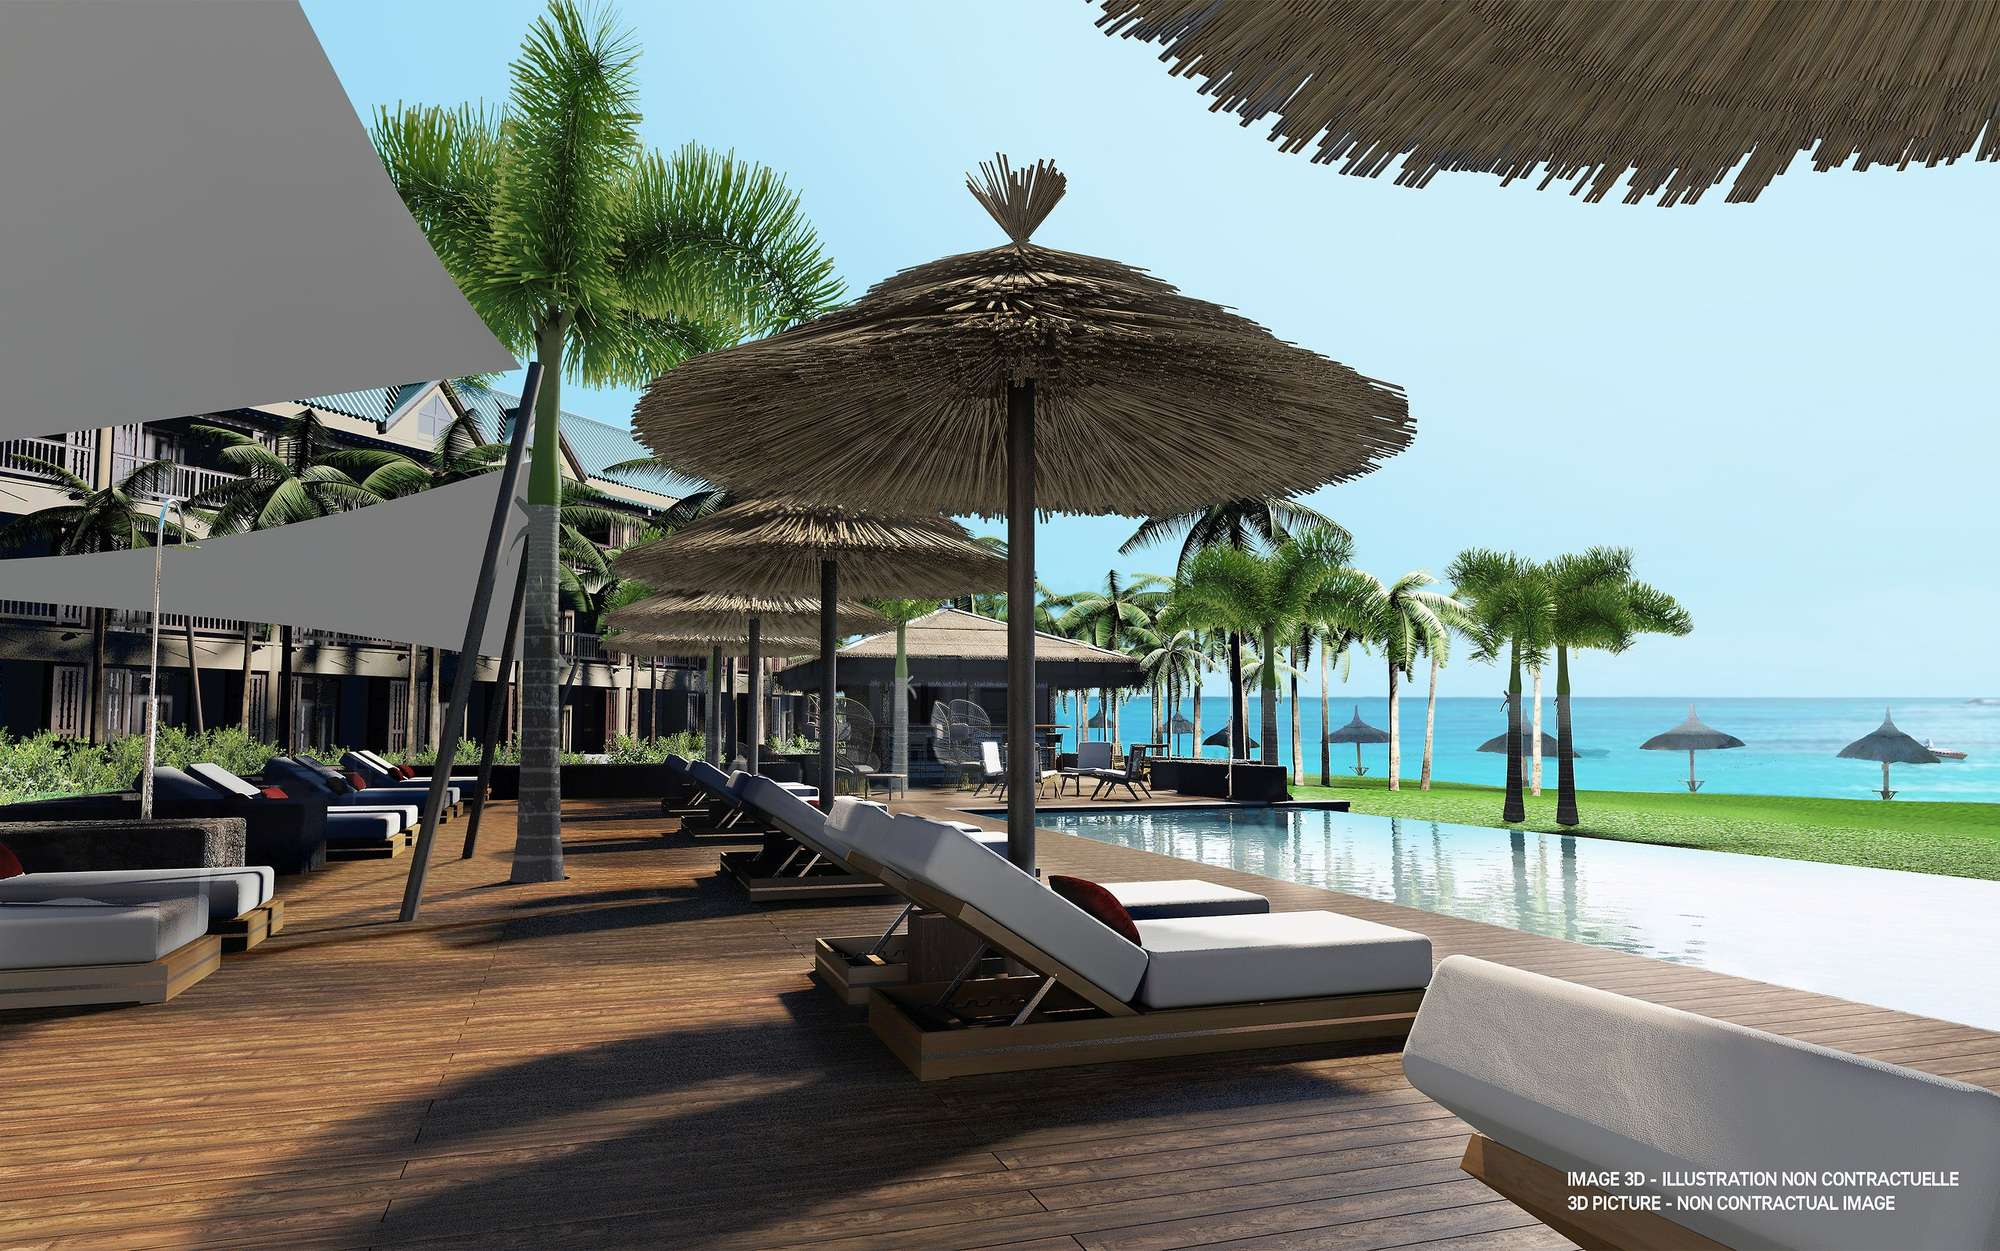 https _ns.clubmed.com_dream_RESORTS_3T___4T_Asie_et_Ocean_indien_La_Pointe_aux_Canonniers_48295-hgn26eaw0f-swhr